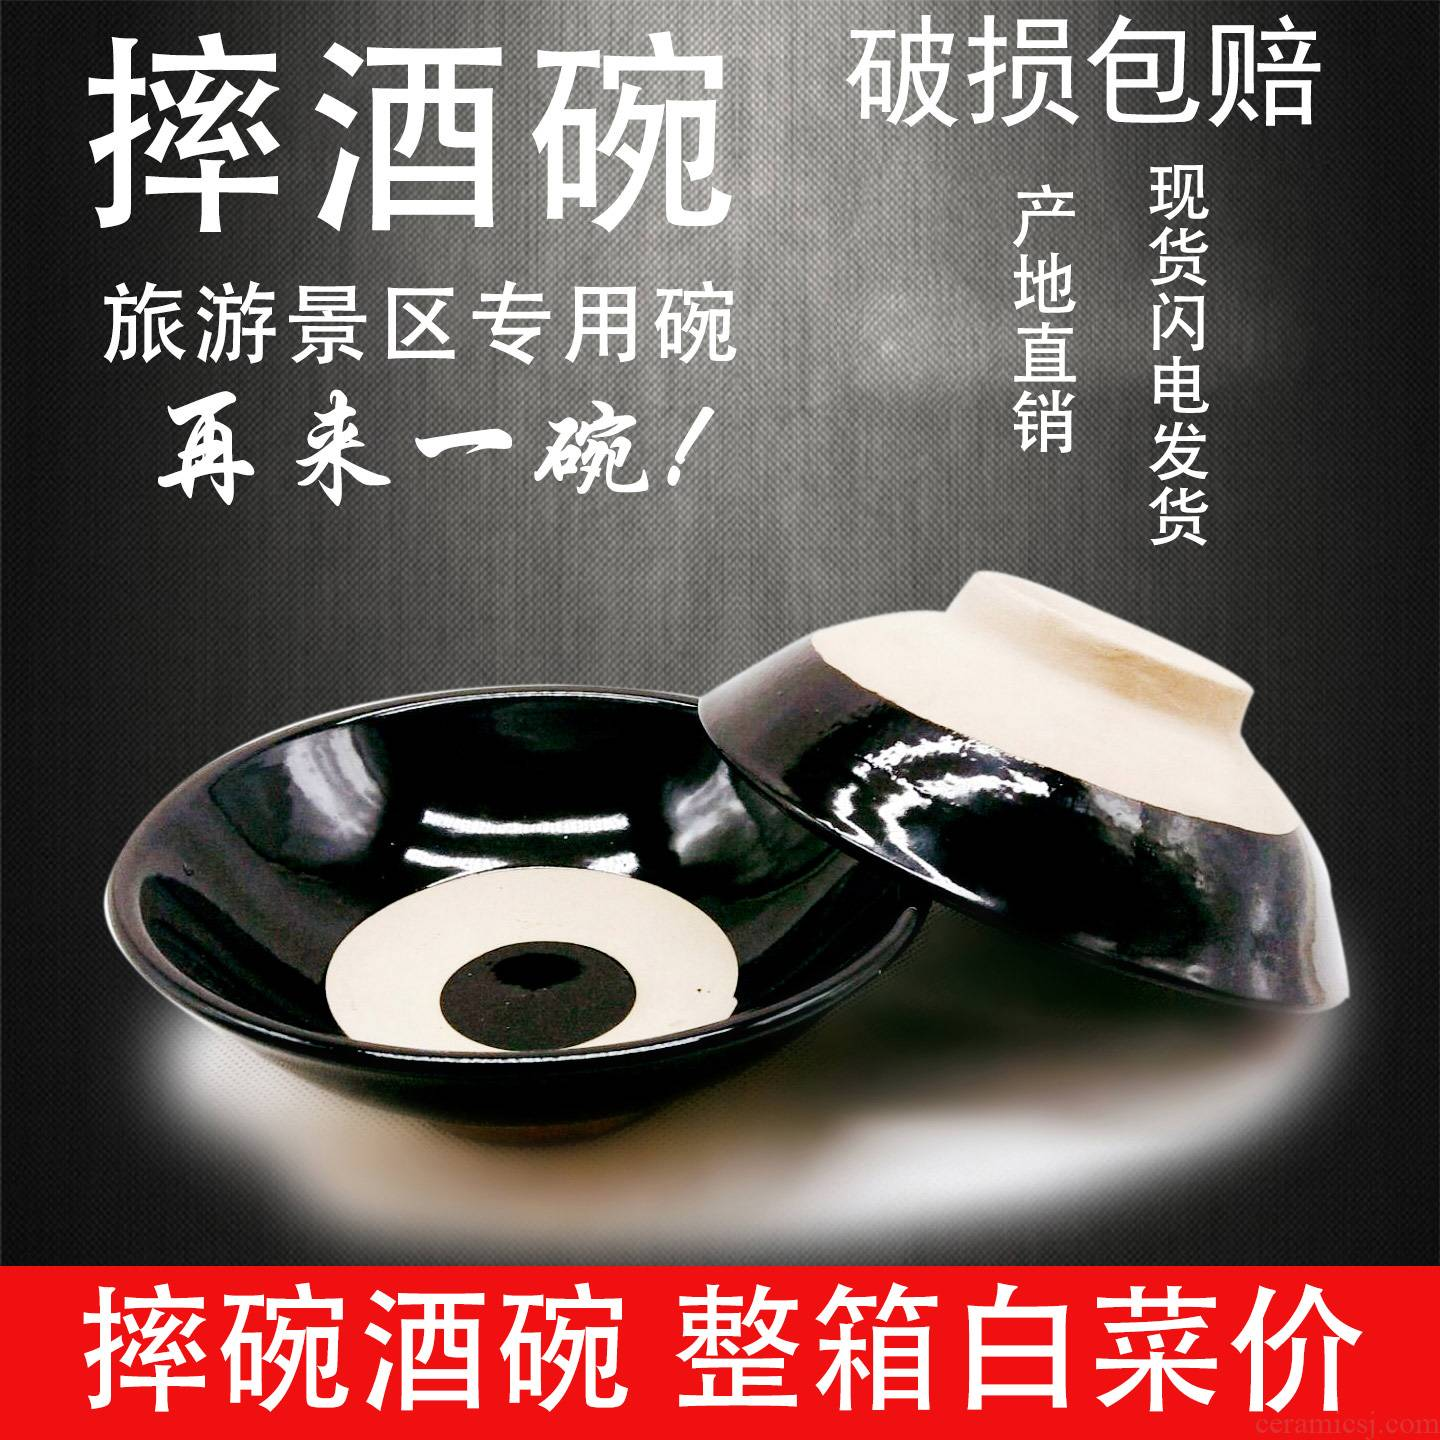 Wine steaming bowl of old earthenware bowl of archaize soil bowl of hot pot dish bowl of dip barbecue pork with coarse pottery bowl bowl of a beggar fell and Wine